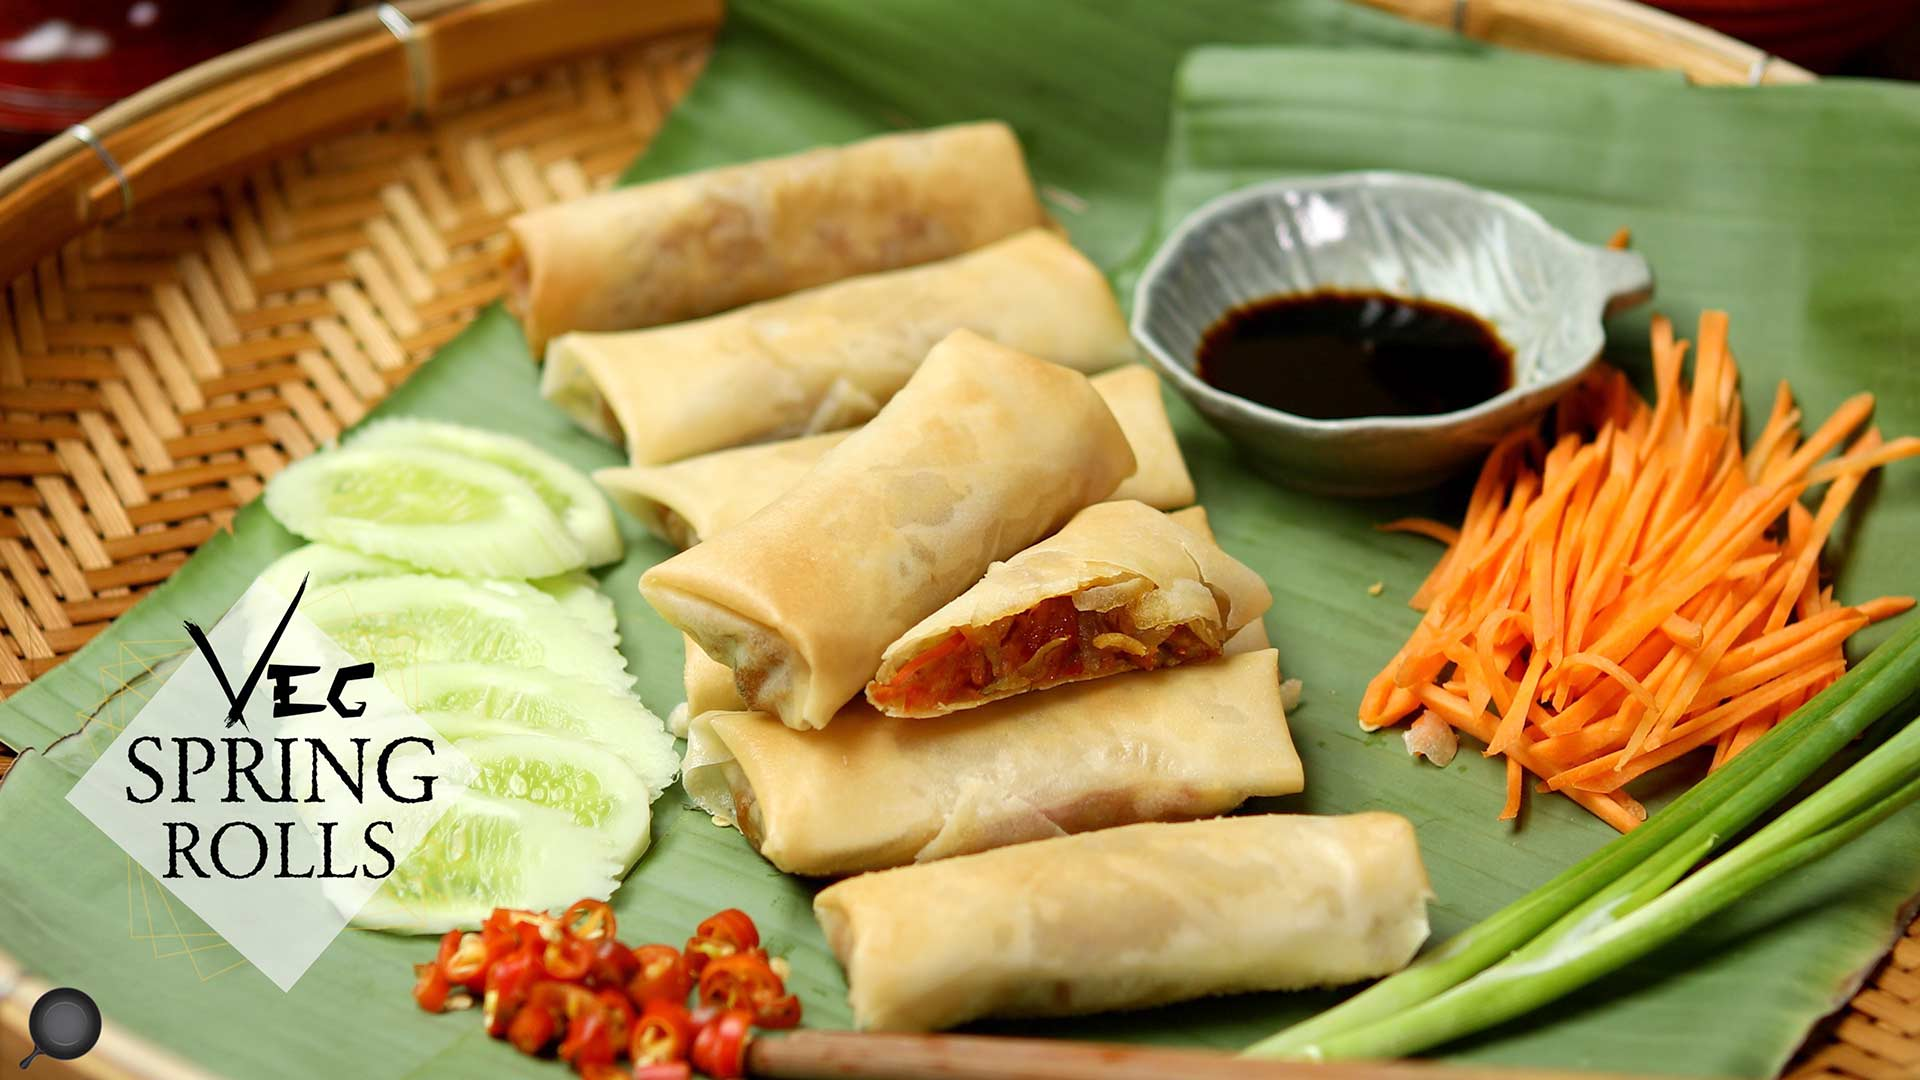 Veg Spring Rolls Recipe | How to Make The Best Vegetable Spring Rolls